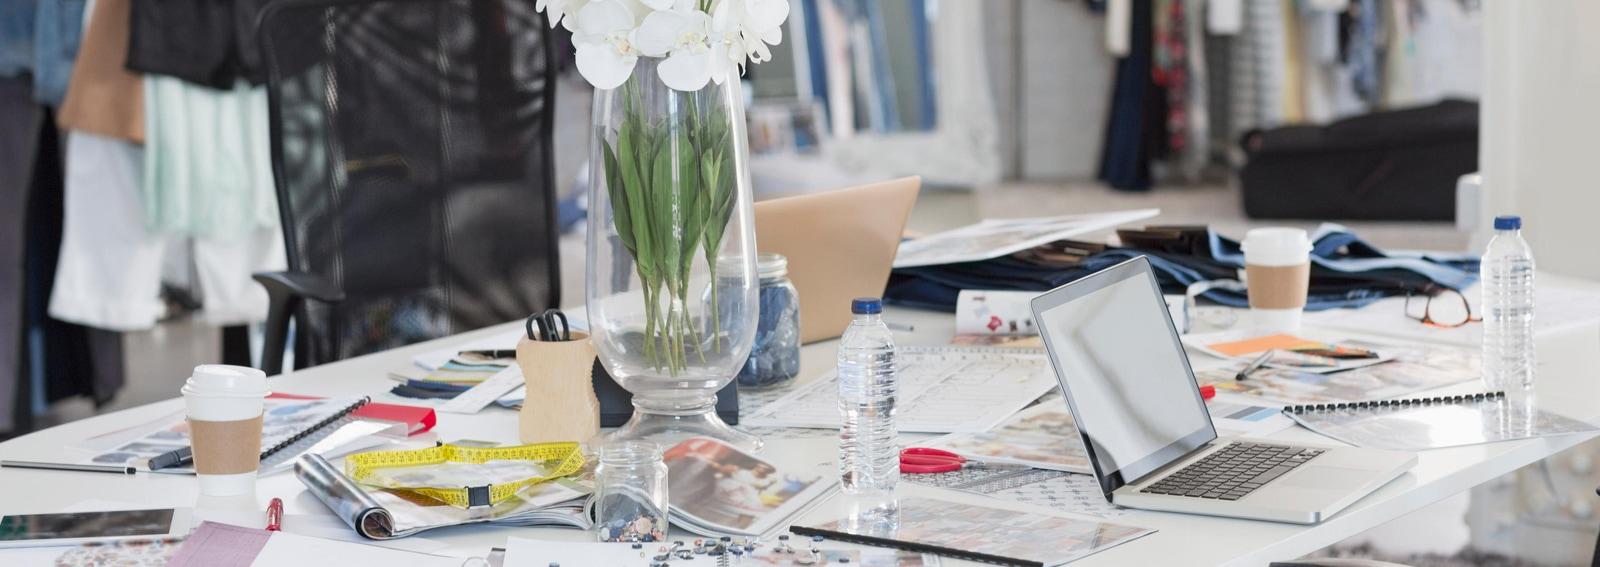 Bouquet, proofs, swatches and clothing in fashion design office. Image shot 2015. Exact date unknown.